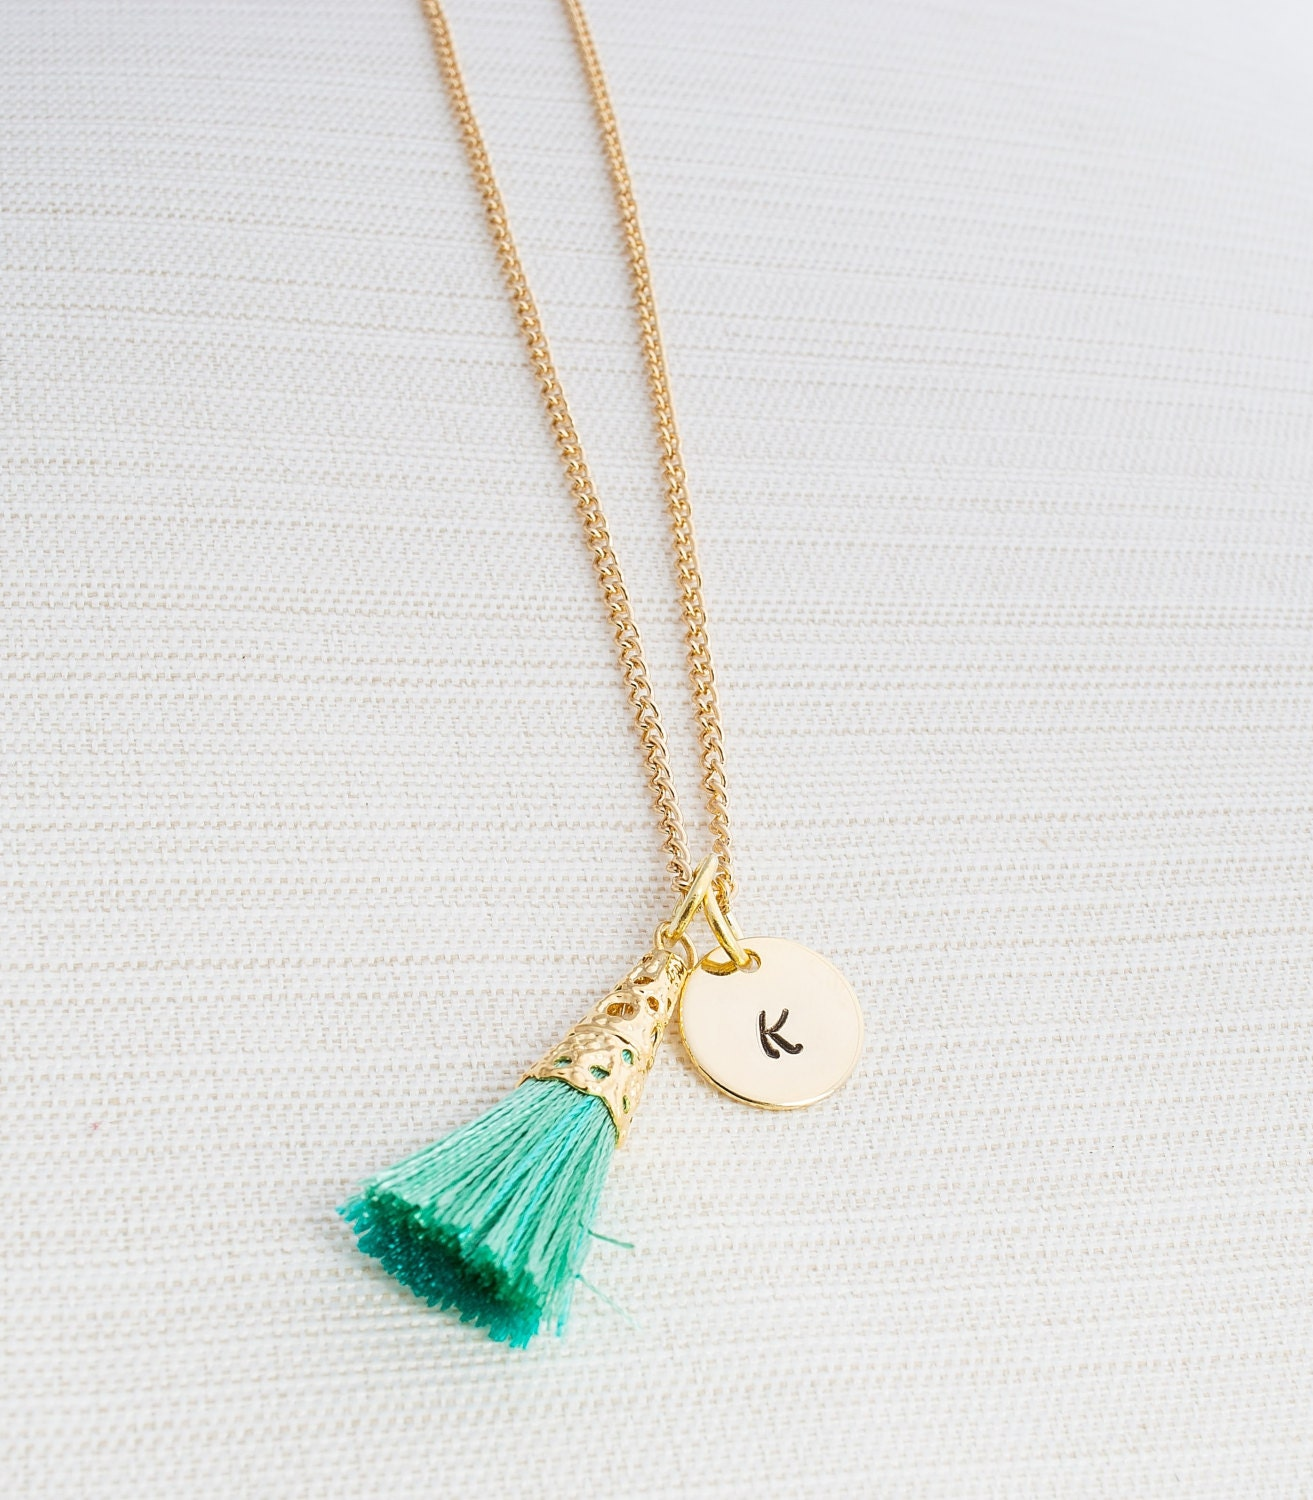 Make Your Own Tassel Necklace: Personalized Tassel Necklace Initial Jewelry Gold Plated